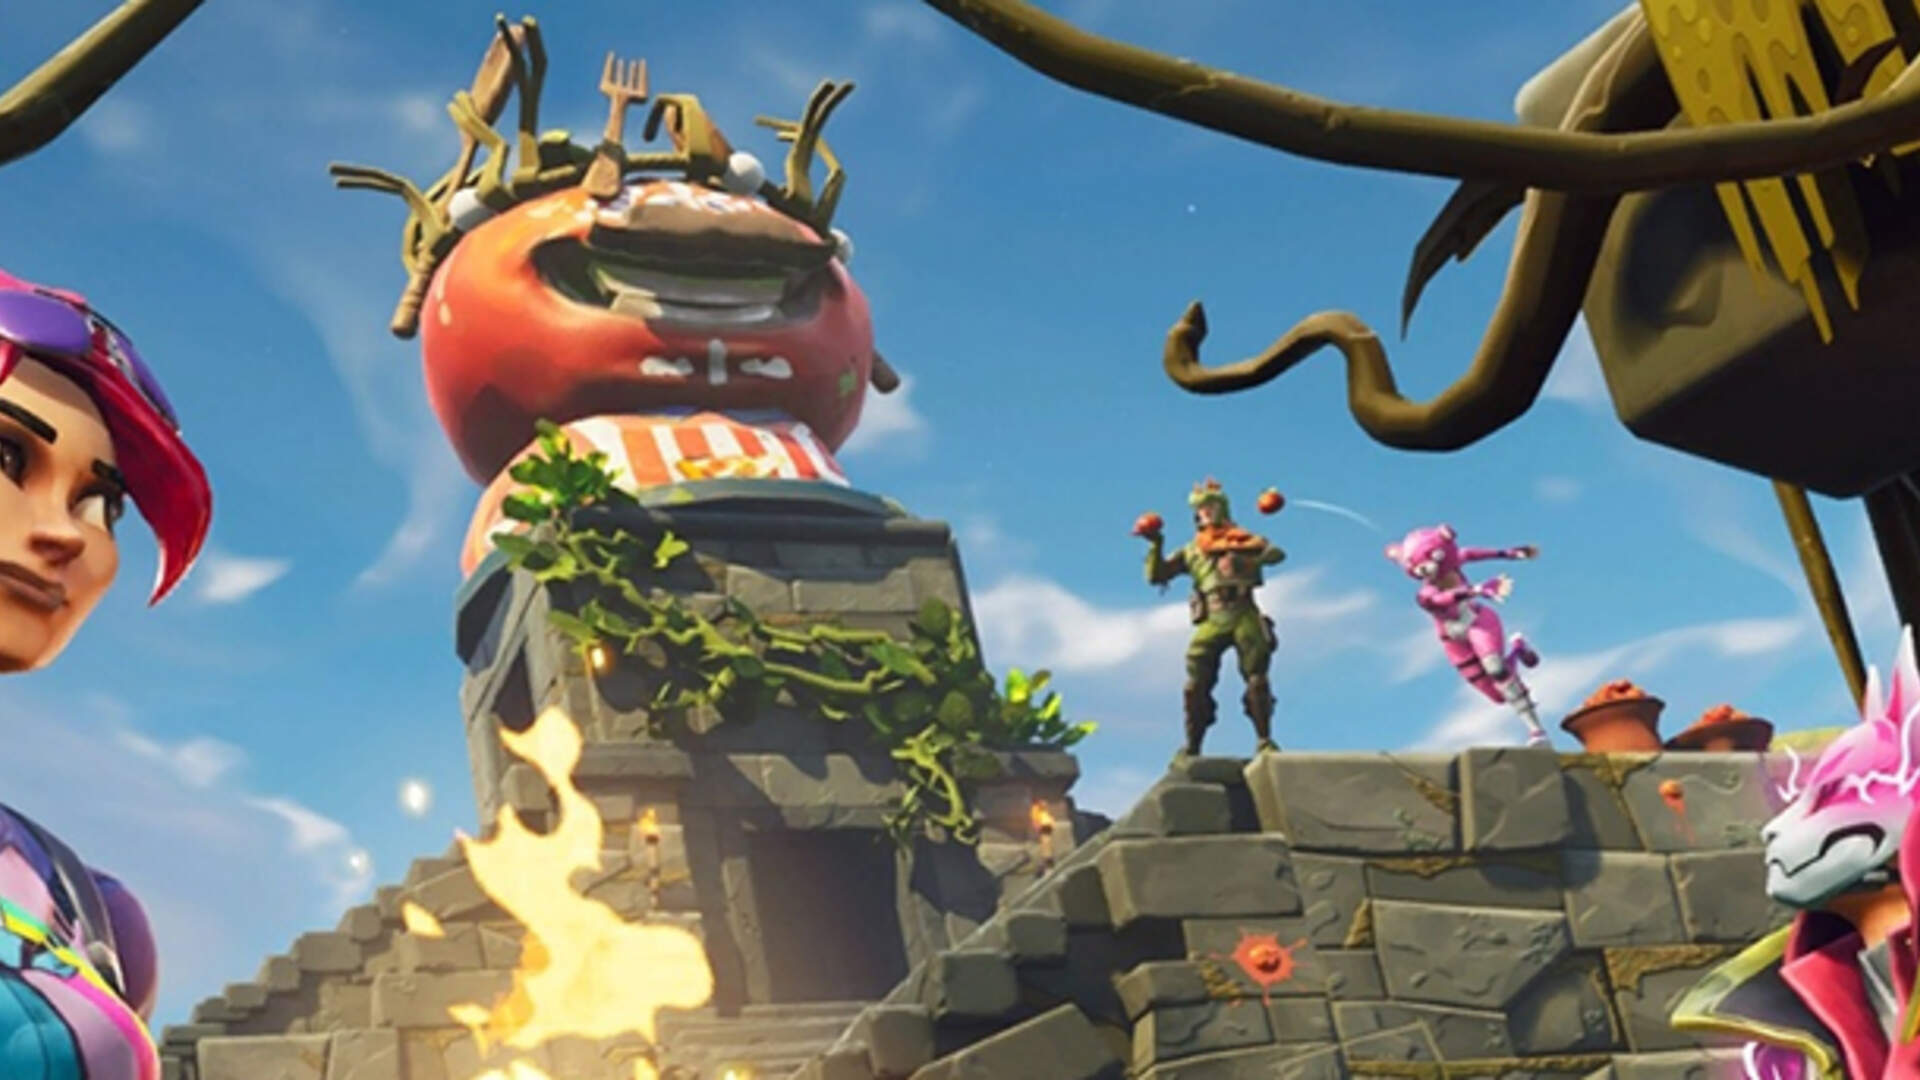 Epic is Releasing Fortnite's Cross-Platform Services to Game Developers for Free Next Year